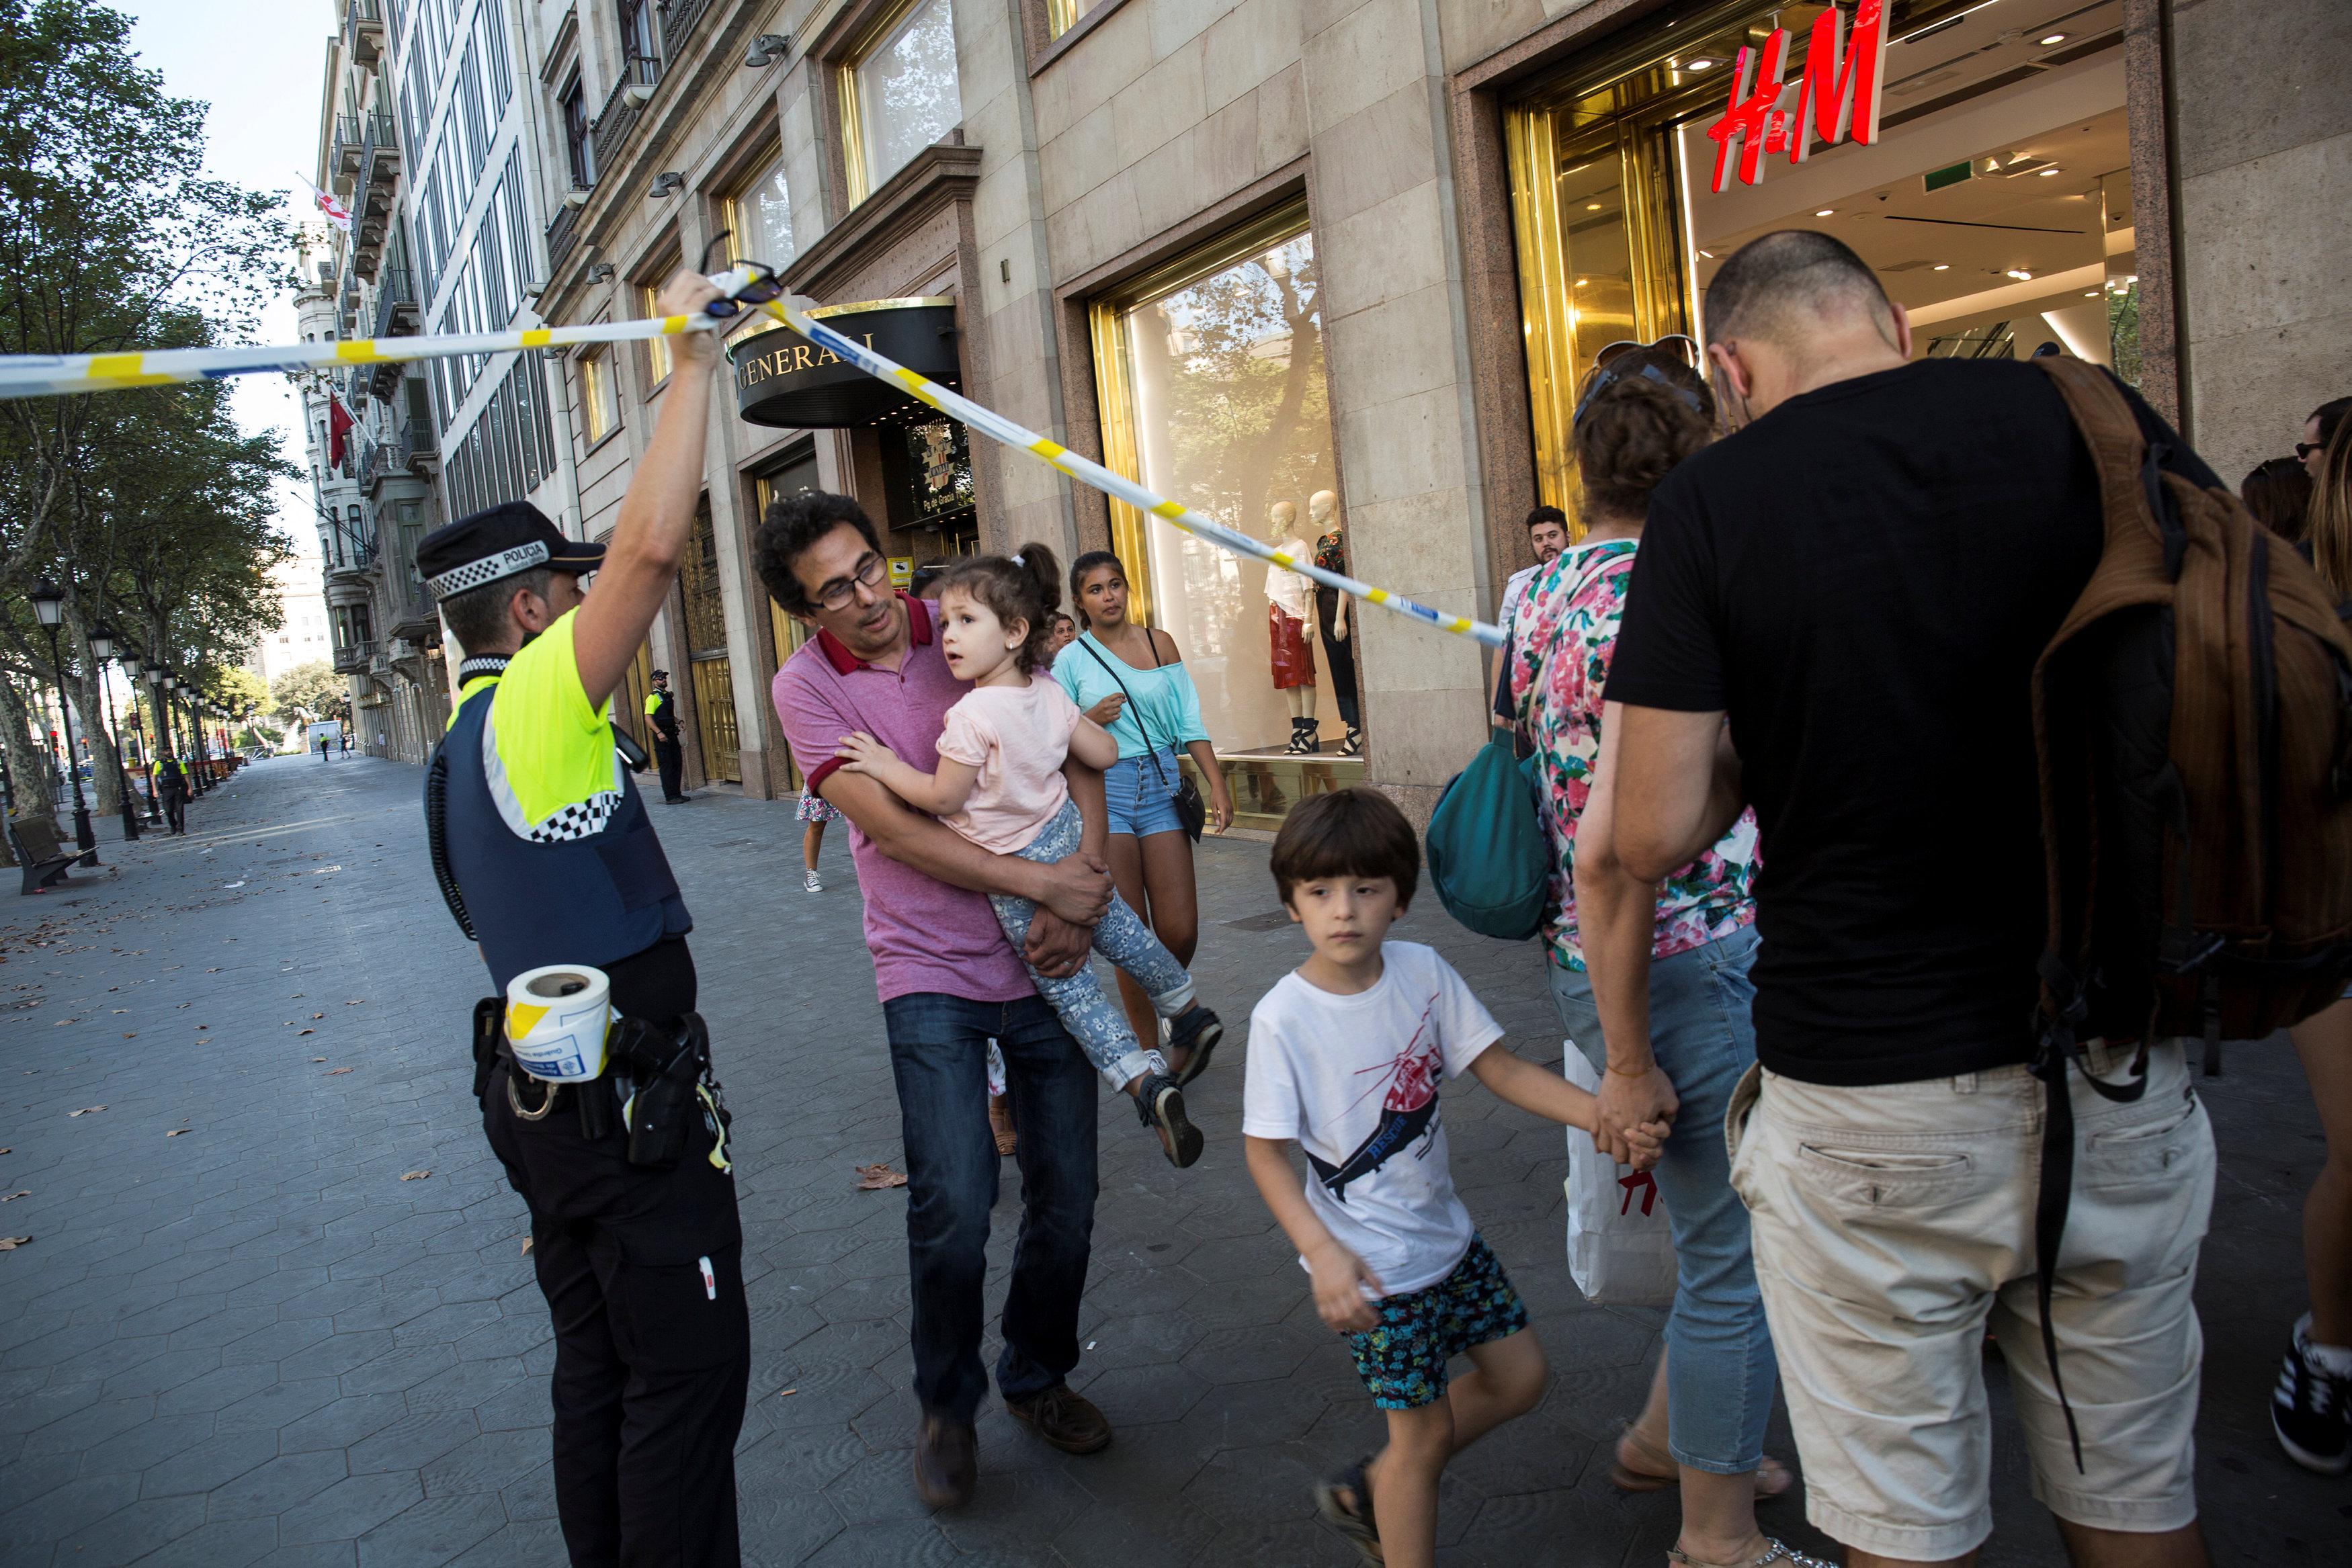 A police officer helps evacuate people after a van crashed into pedestrians near the Las Ramblas avenue in central Barcelona, Spain August 17, 2017. Ana Jimenez/La Vanguardia/via REUTERS   ATTENTION EDITORS - THIS IMAGE WAS PROVIDED BY A THIRD PARTY. MANDATORY CREDIT. NO RESALES. NO ARCHIVE. SPAIN OUT.